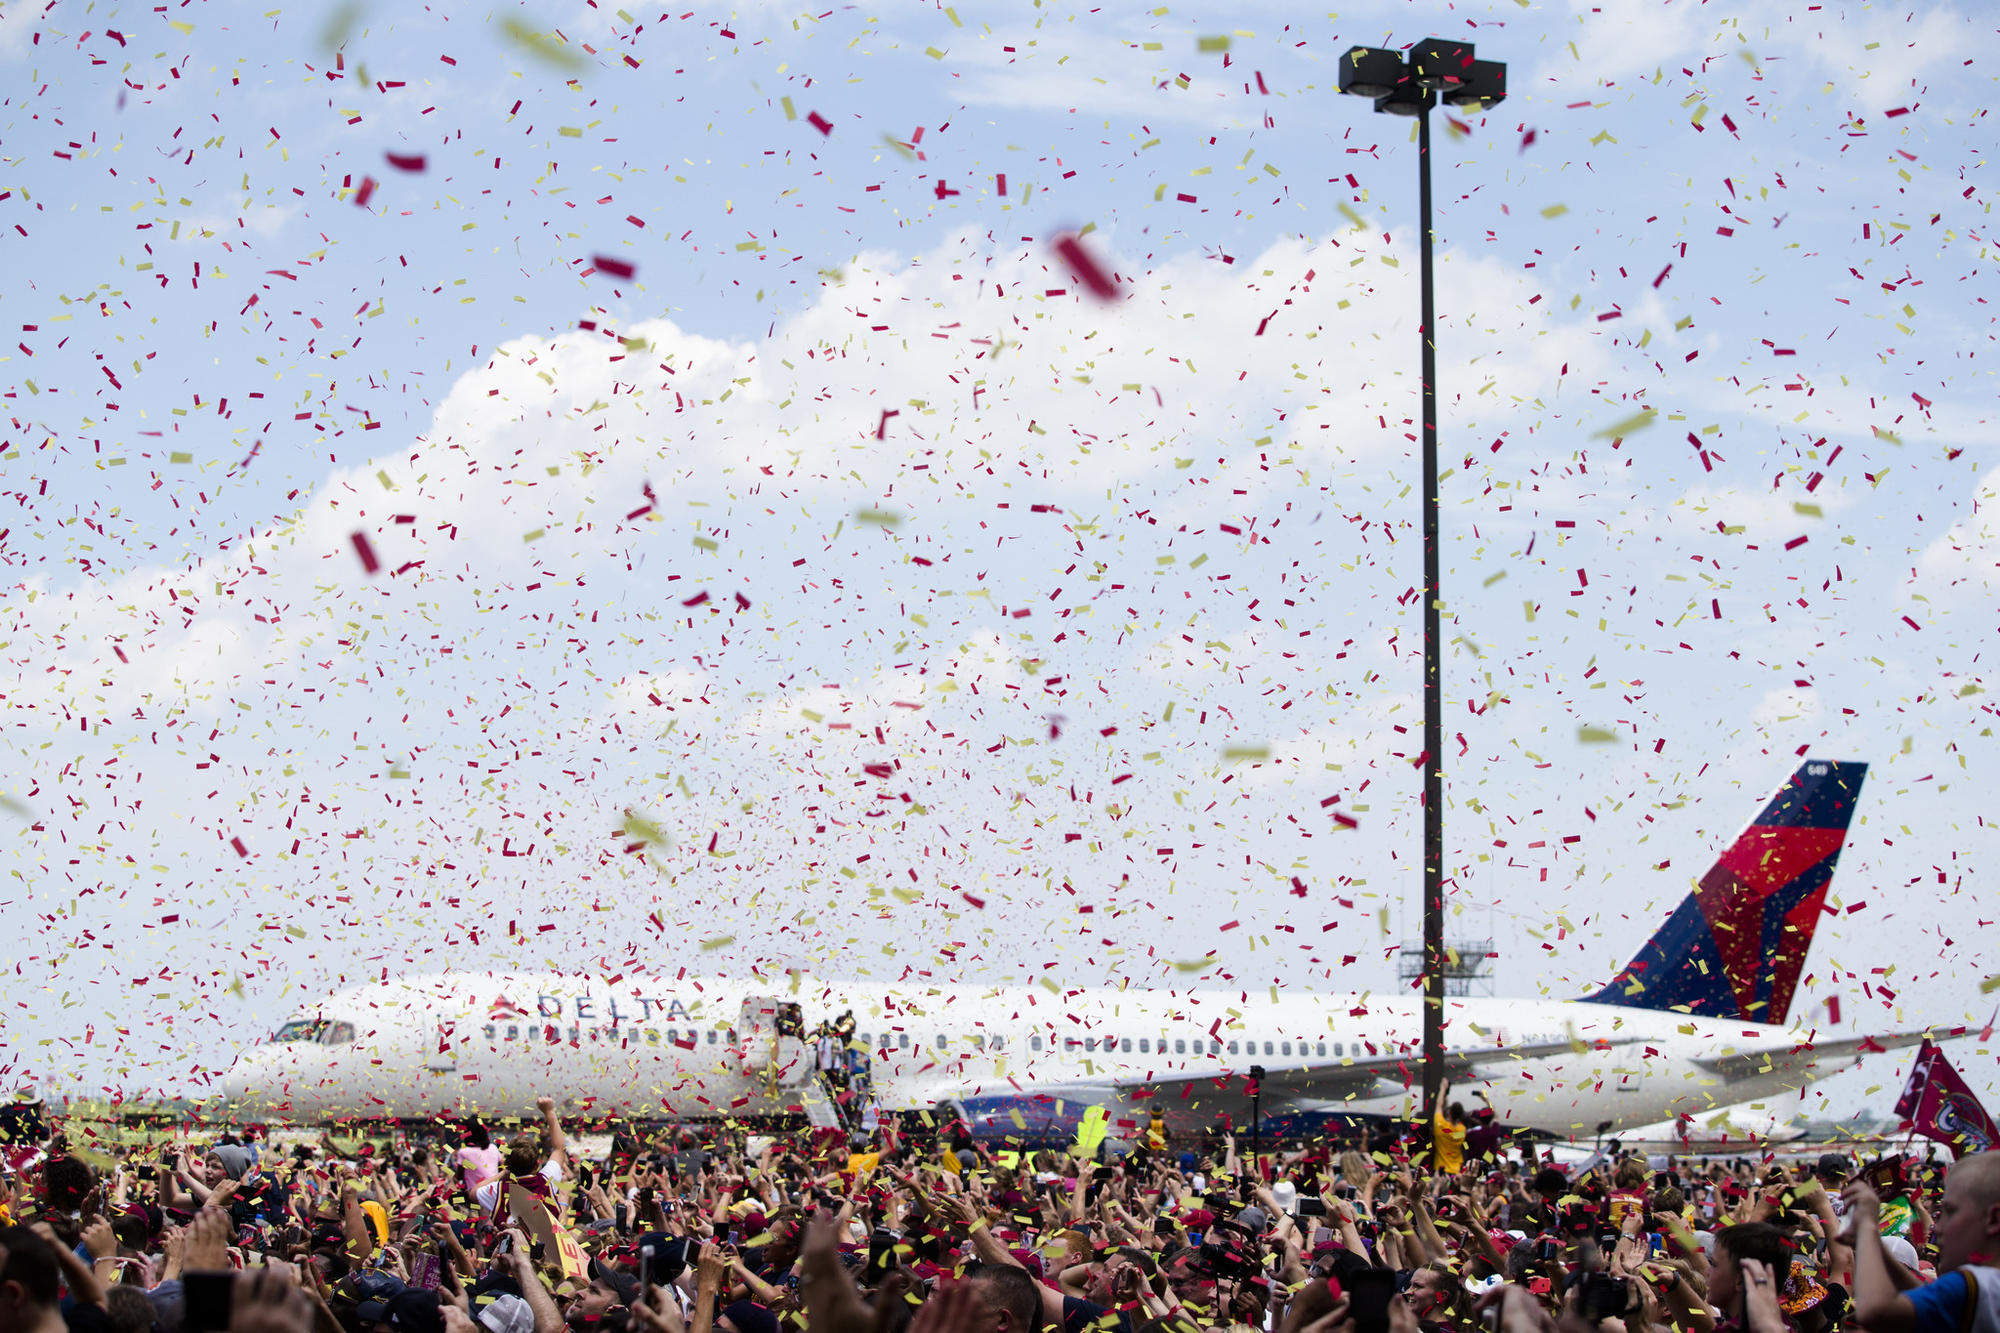 Confetti is sprayed over the crowd as the Cleveland Cavaliers arrive at the airport.